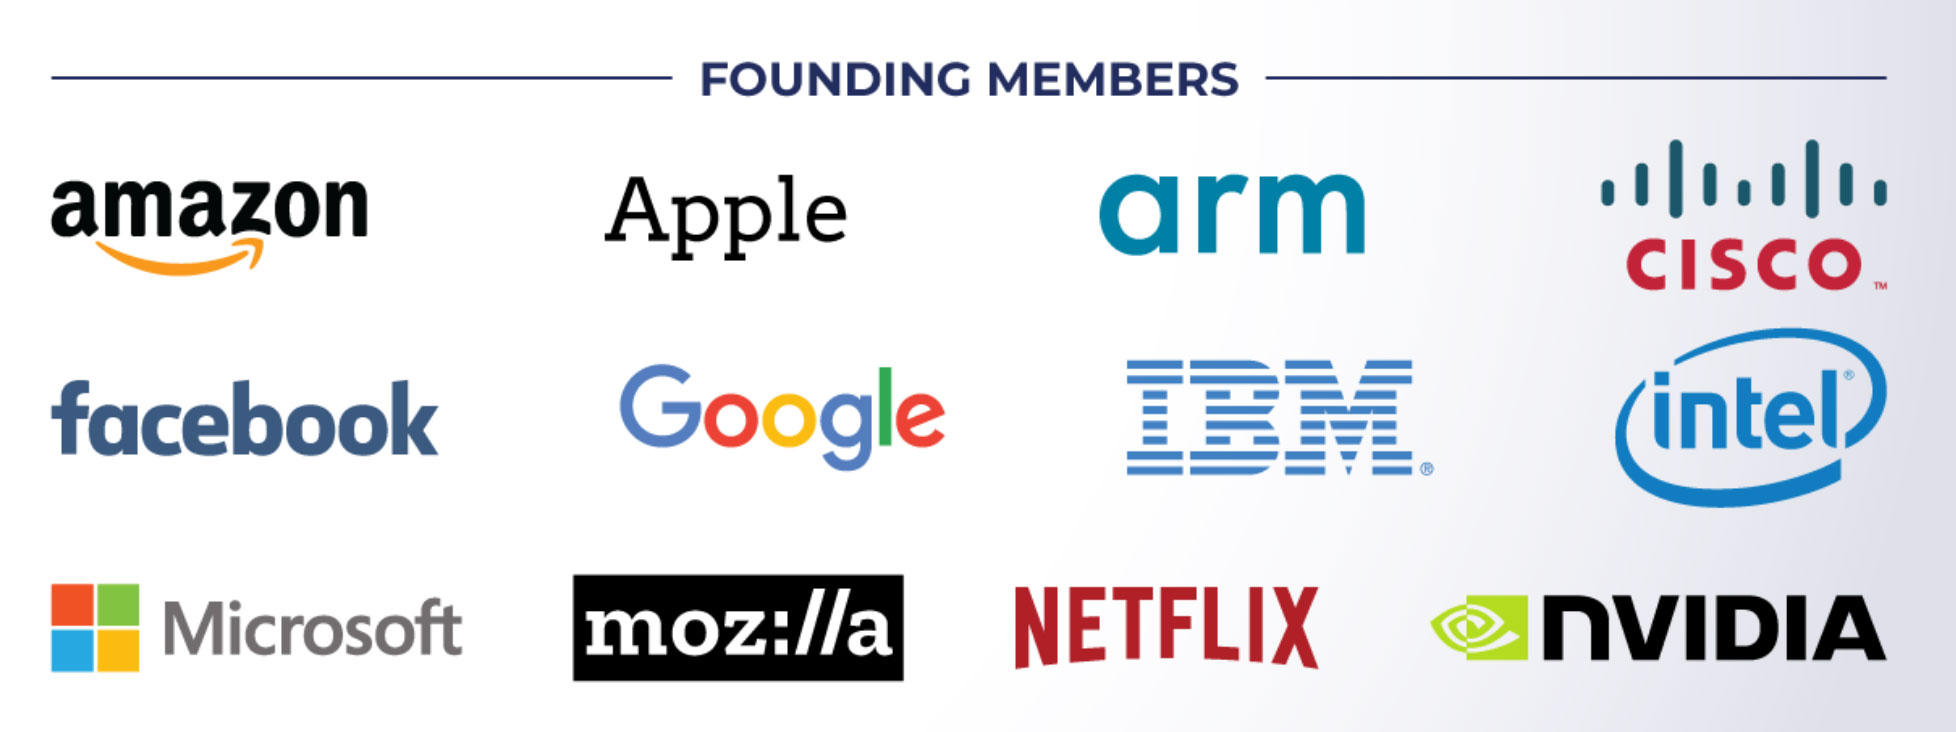 The tech industry's biggest companies are all founding members of the Alliance for Open Media.